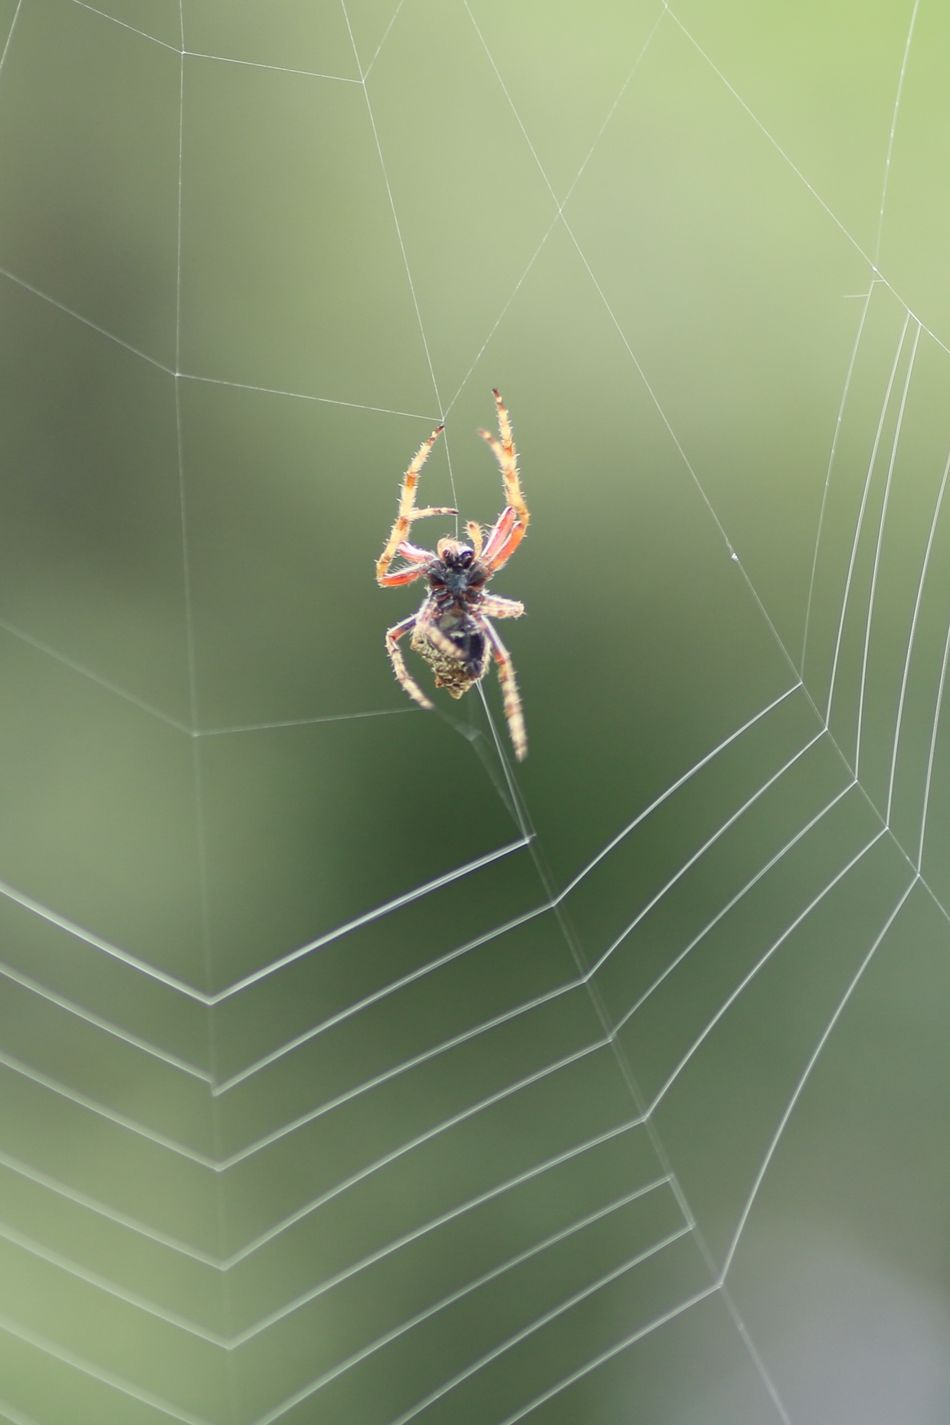 Animal Themes Animal Wildlife Animals In The Wild Close-up Day Fragility Insect Nature No People One Animal Outdoors Spider Spider Web Web